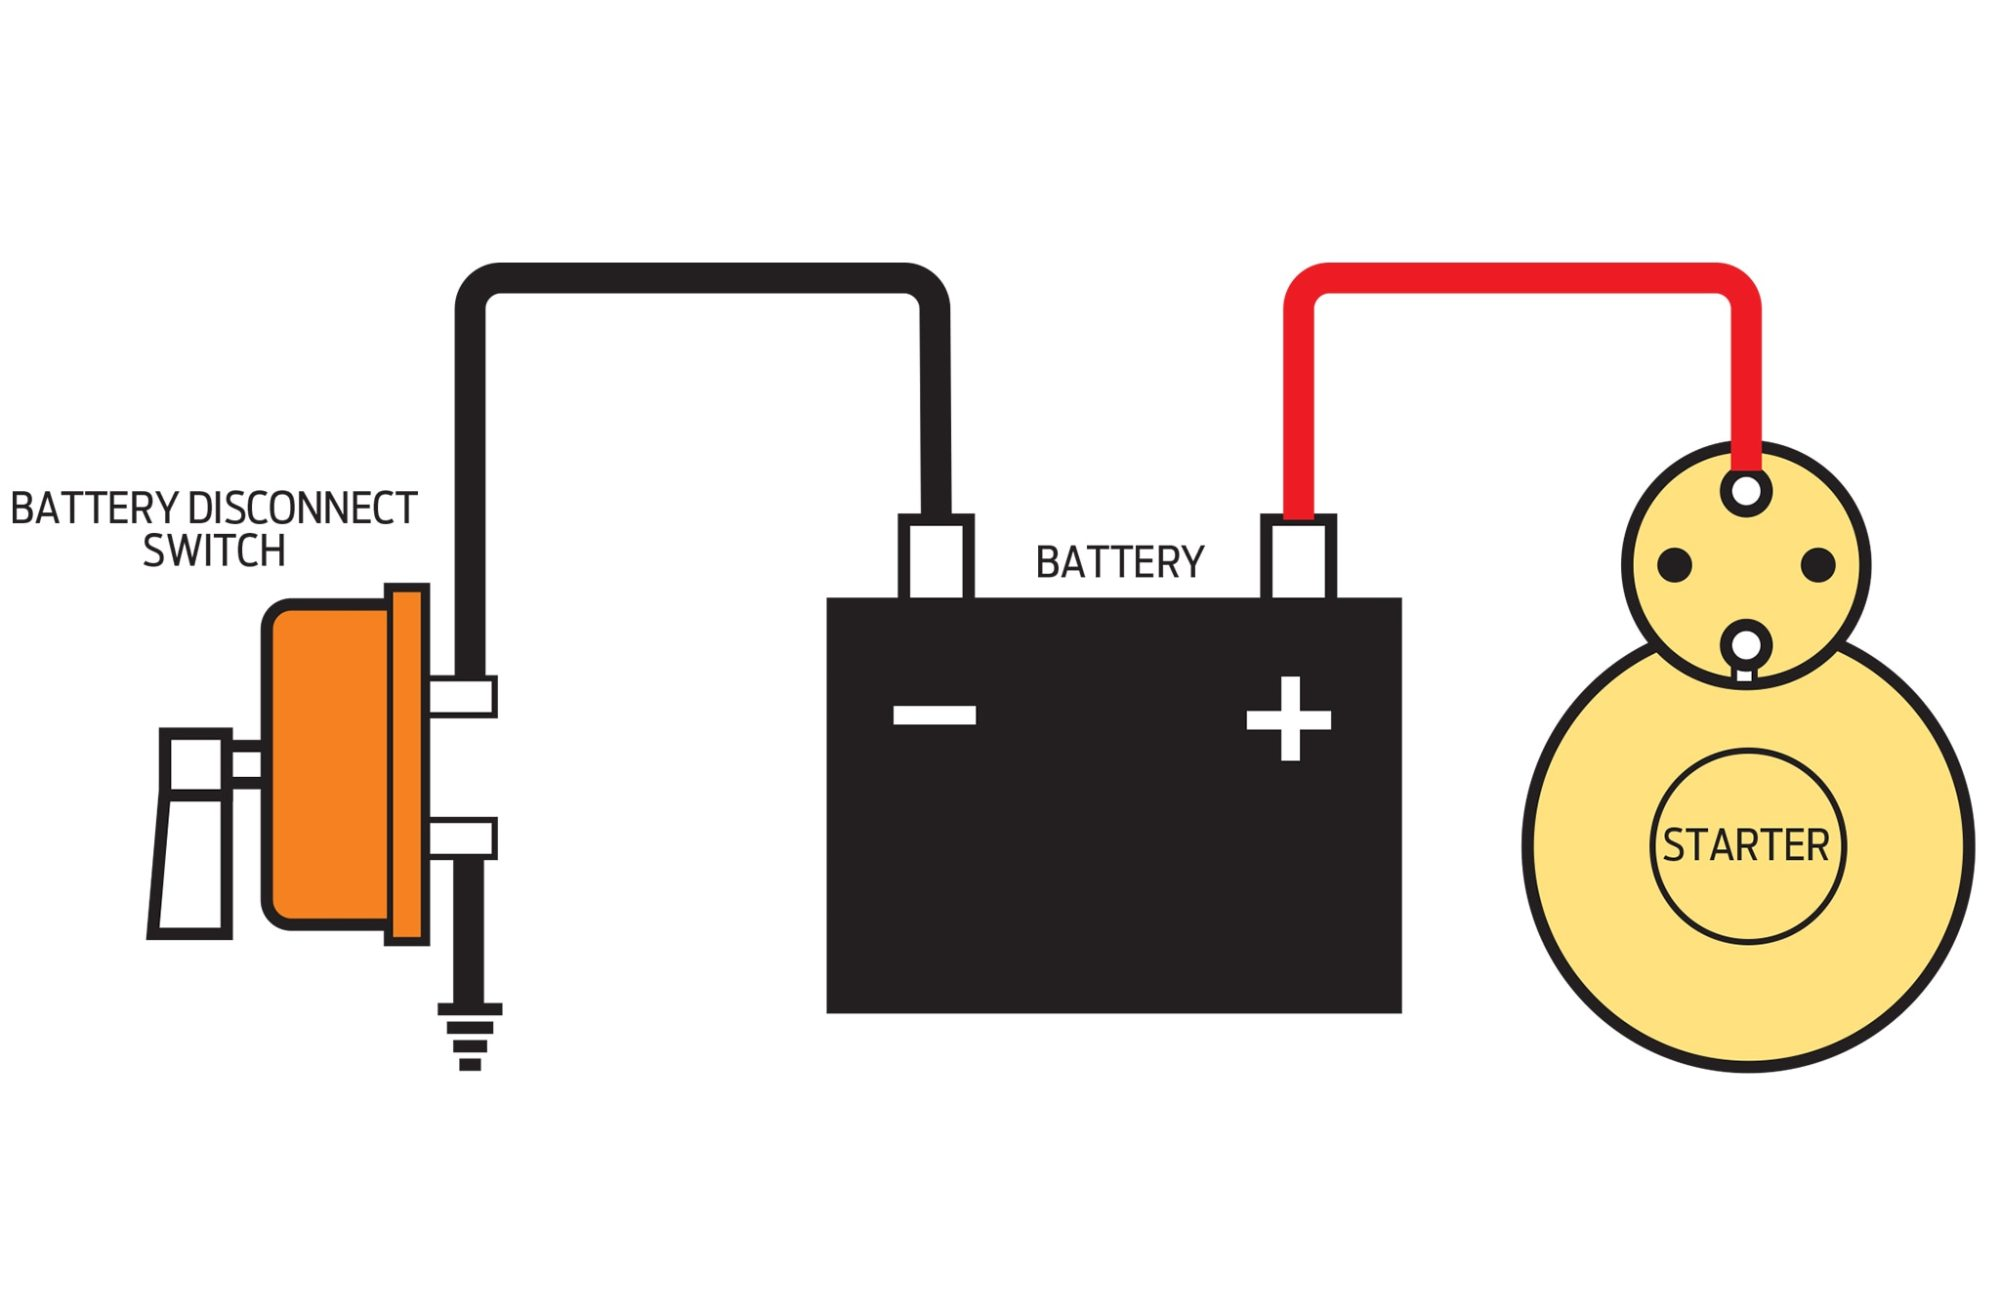 hight resolution of cat battery diagram wiring diagrams battery energy density cat battery diagram